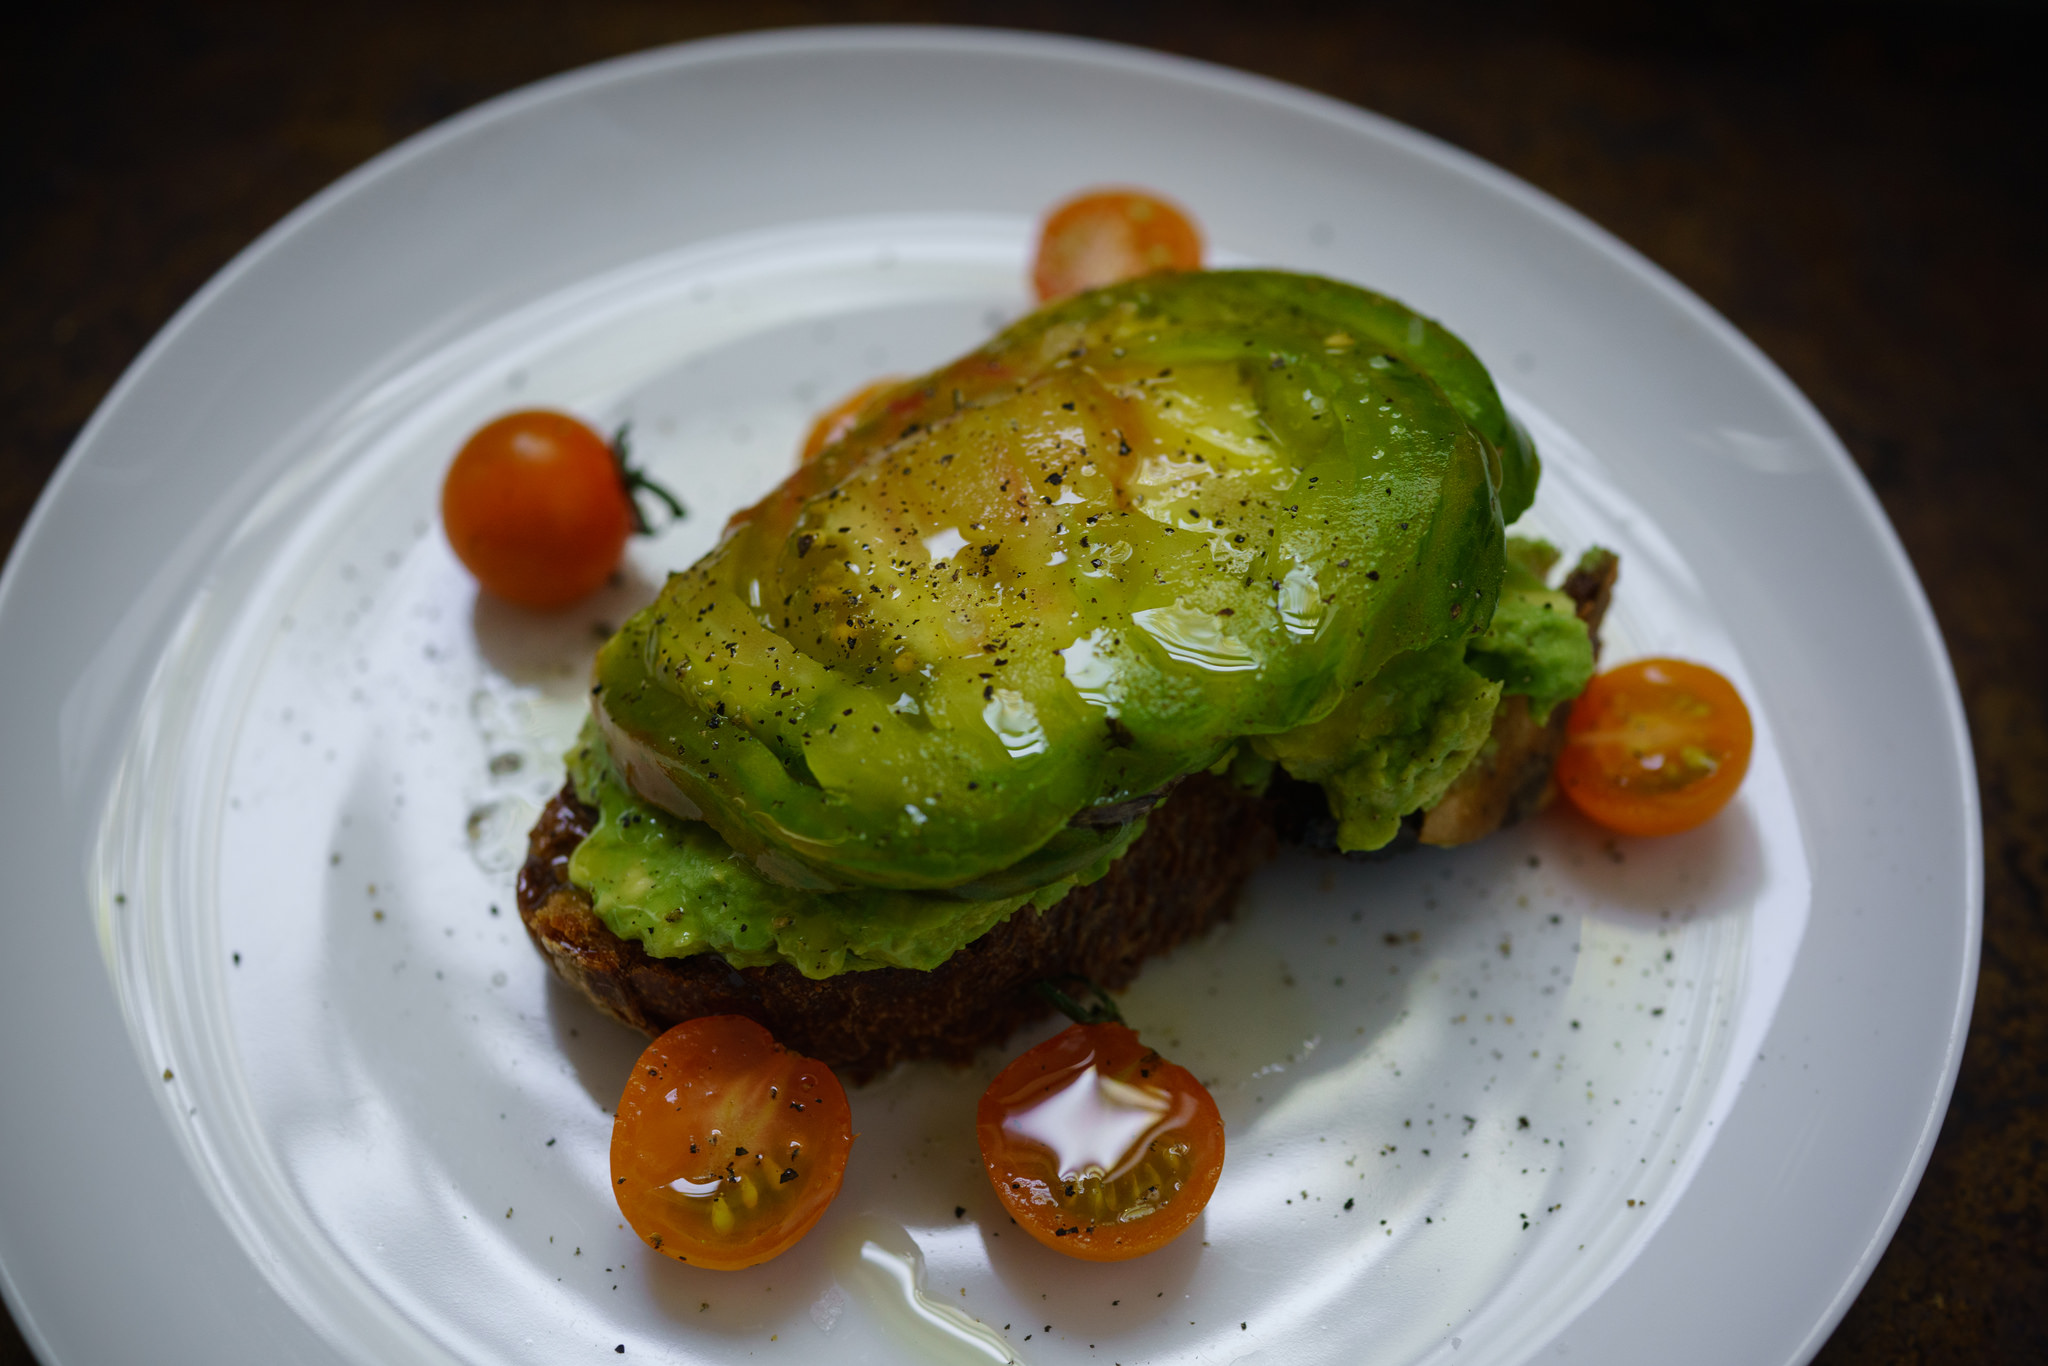 Avocado Toast with Heirloom Tomatoes for breakfast, at home in Brooklyn